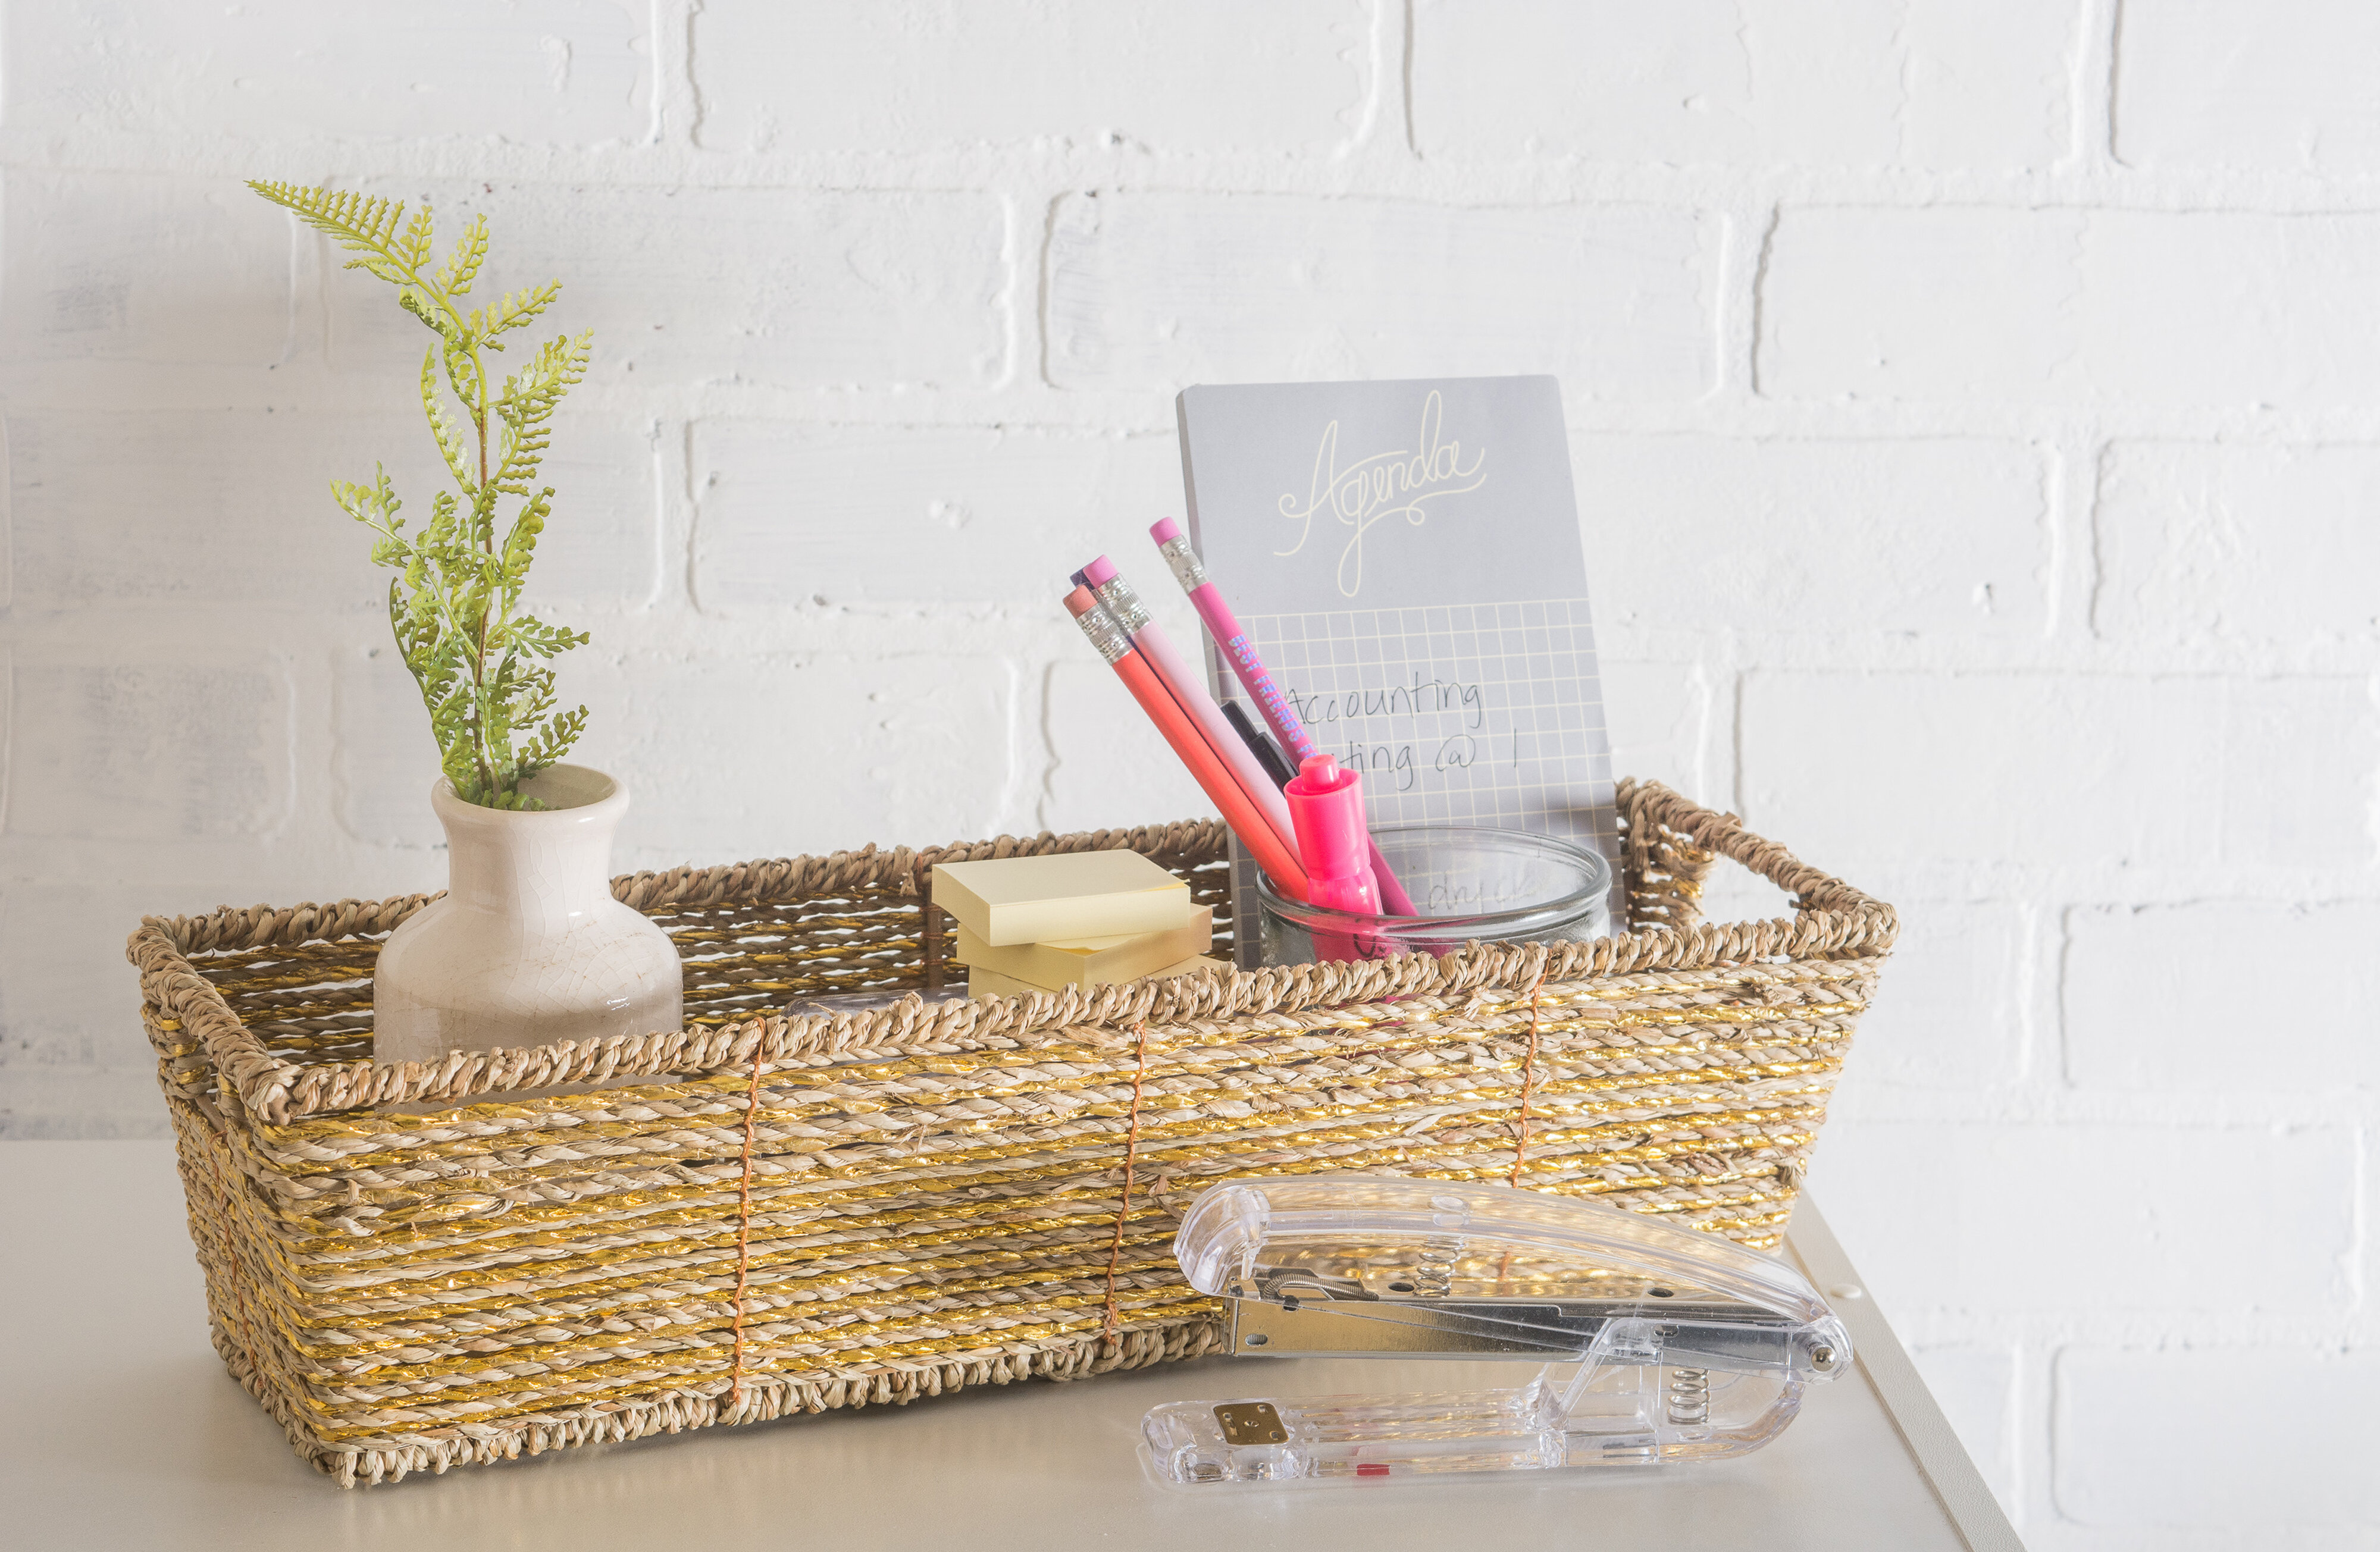 Highland Dunes Seagrass Wicker Basket | Wayfair